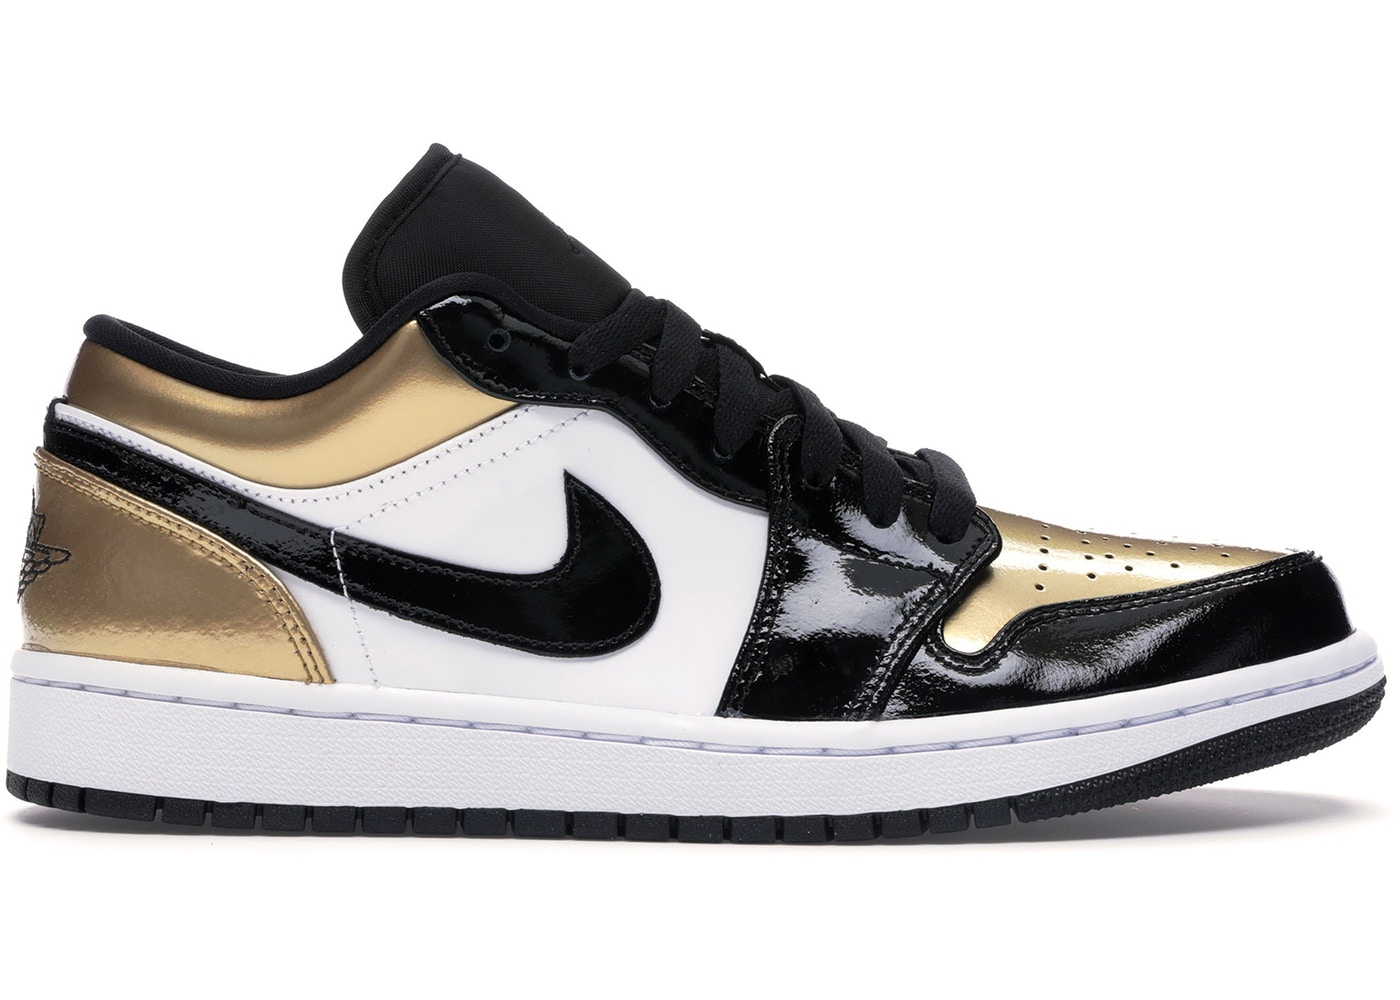 a9cb35c0 Sell. or Ask. Size 7. View All Bids. Jordan 1 Low Gold Toe